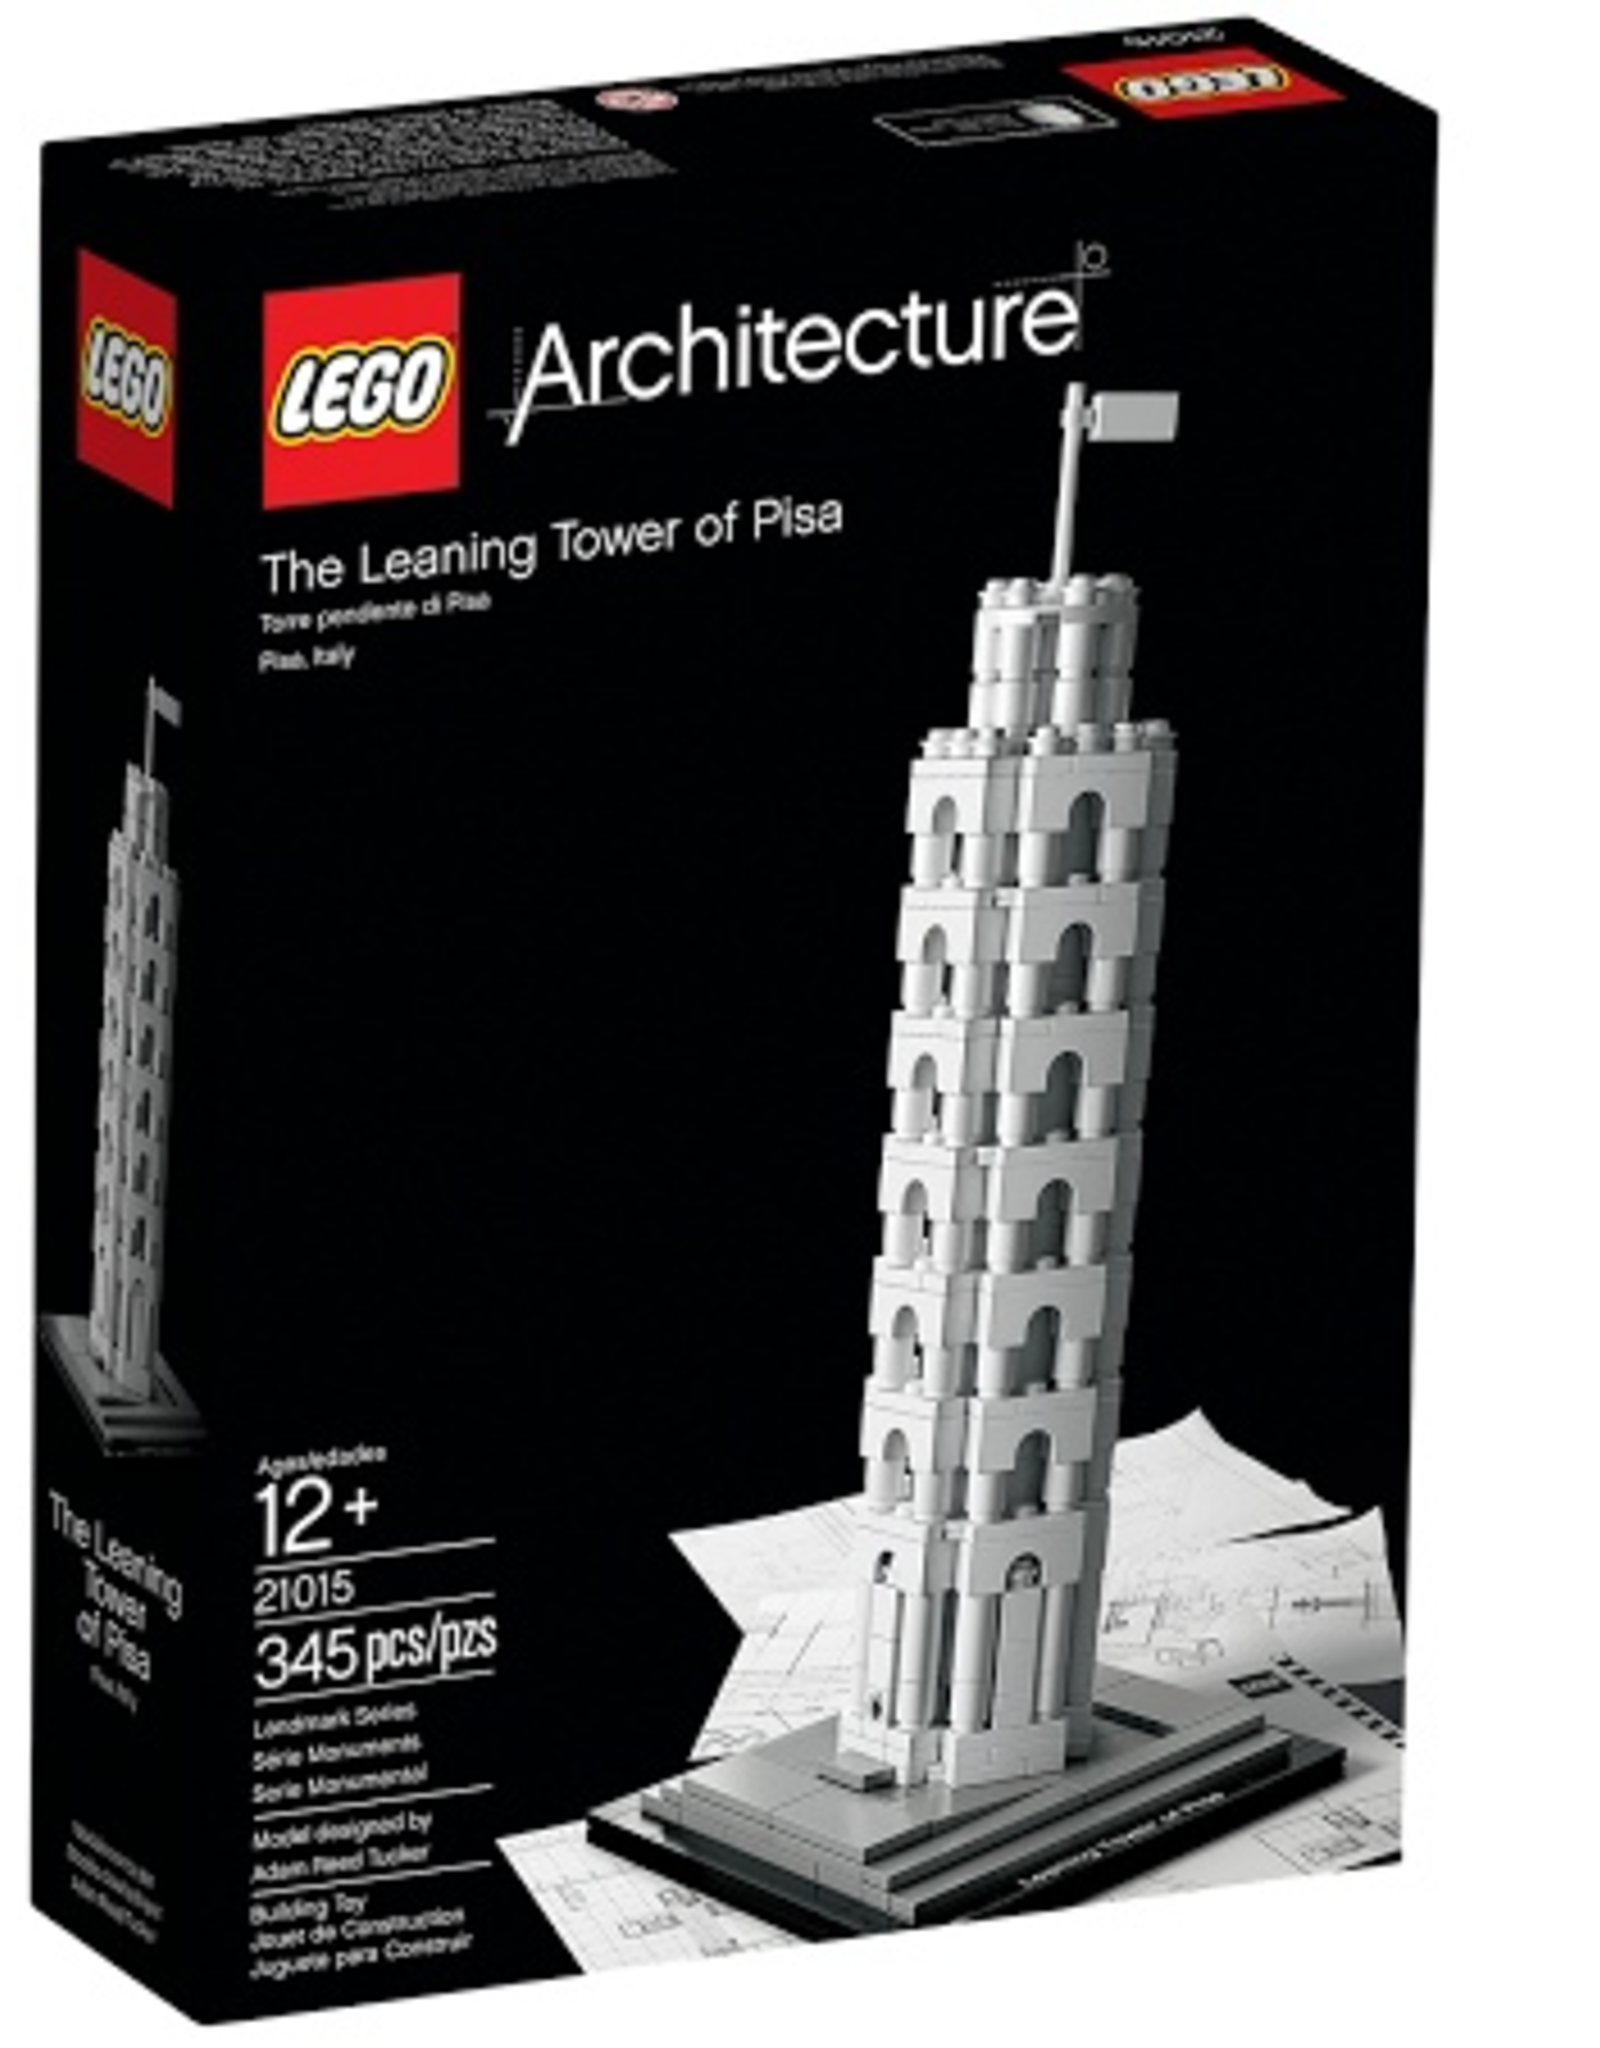 LEGO LEGO 21015 Tower of Pisa - Architecture - SPECIALS